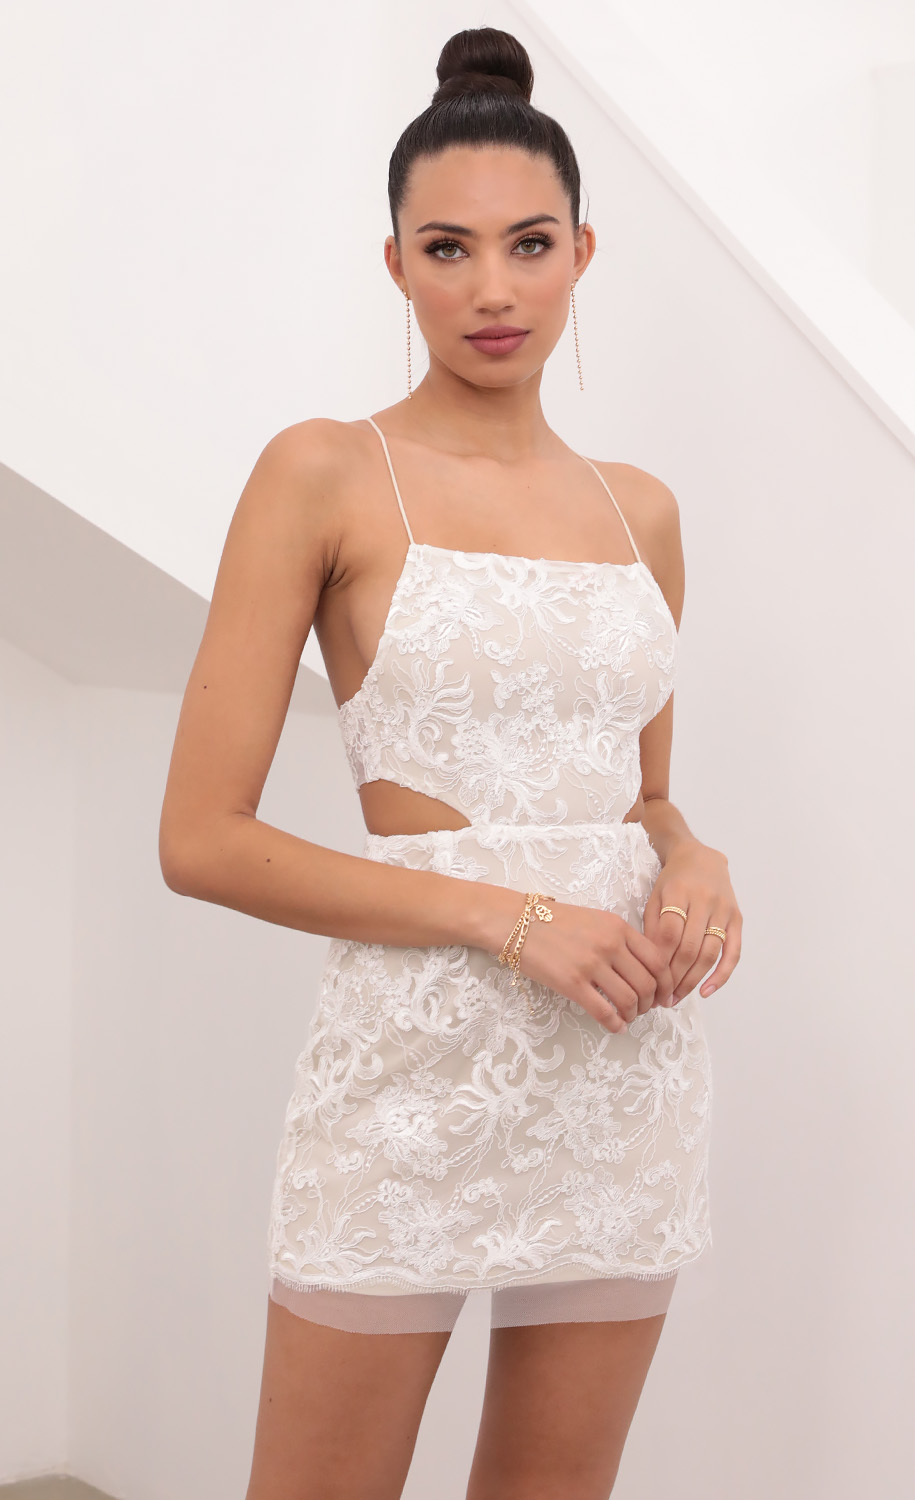 Lana Lace Cutout Dress in White